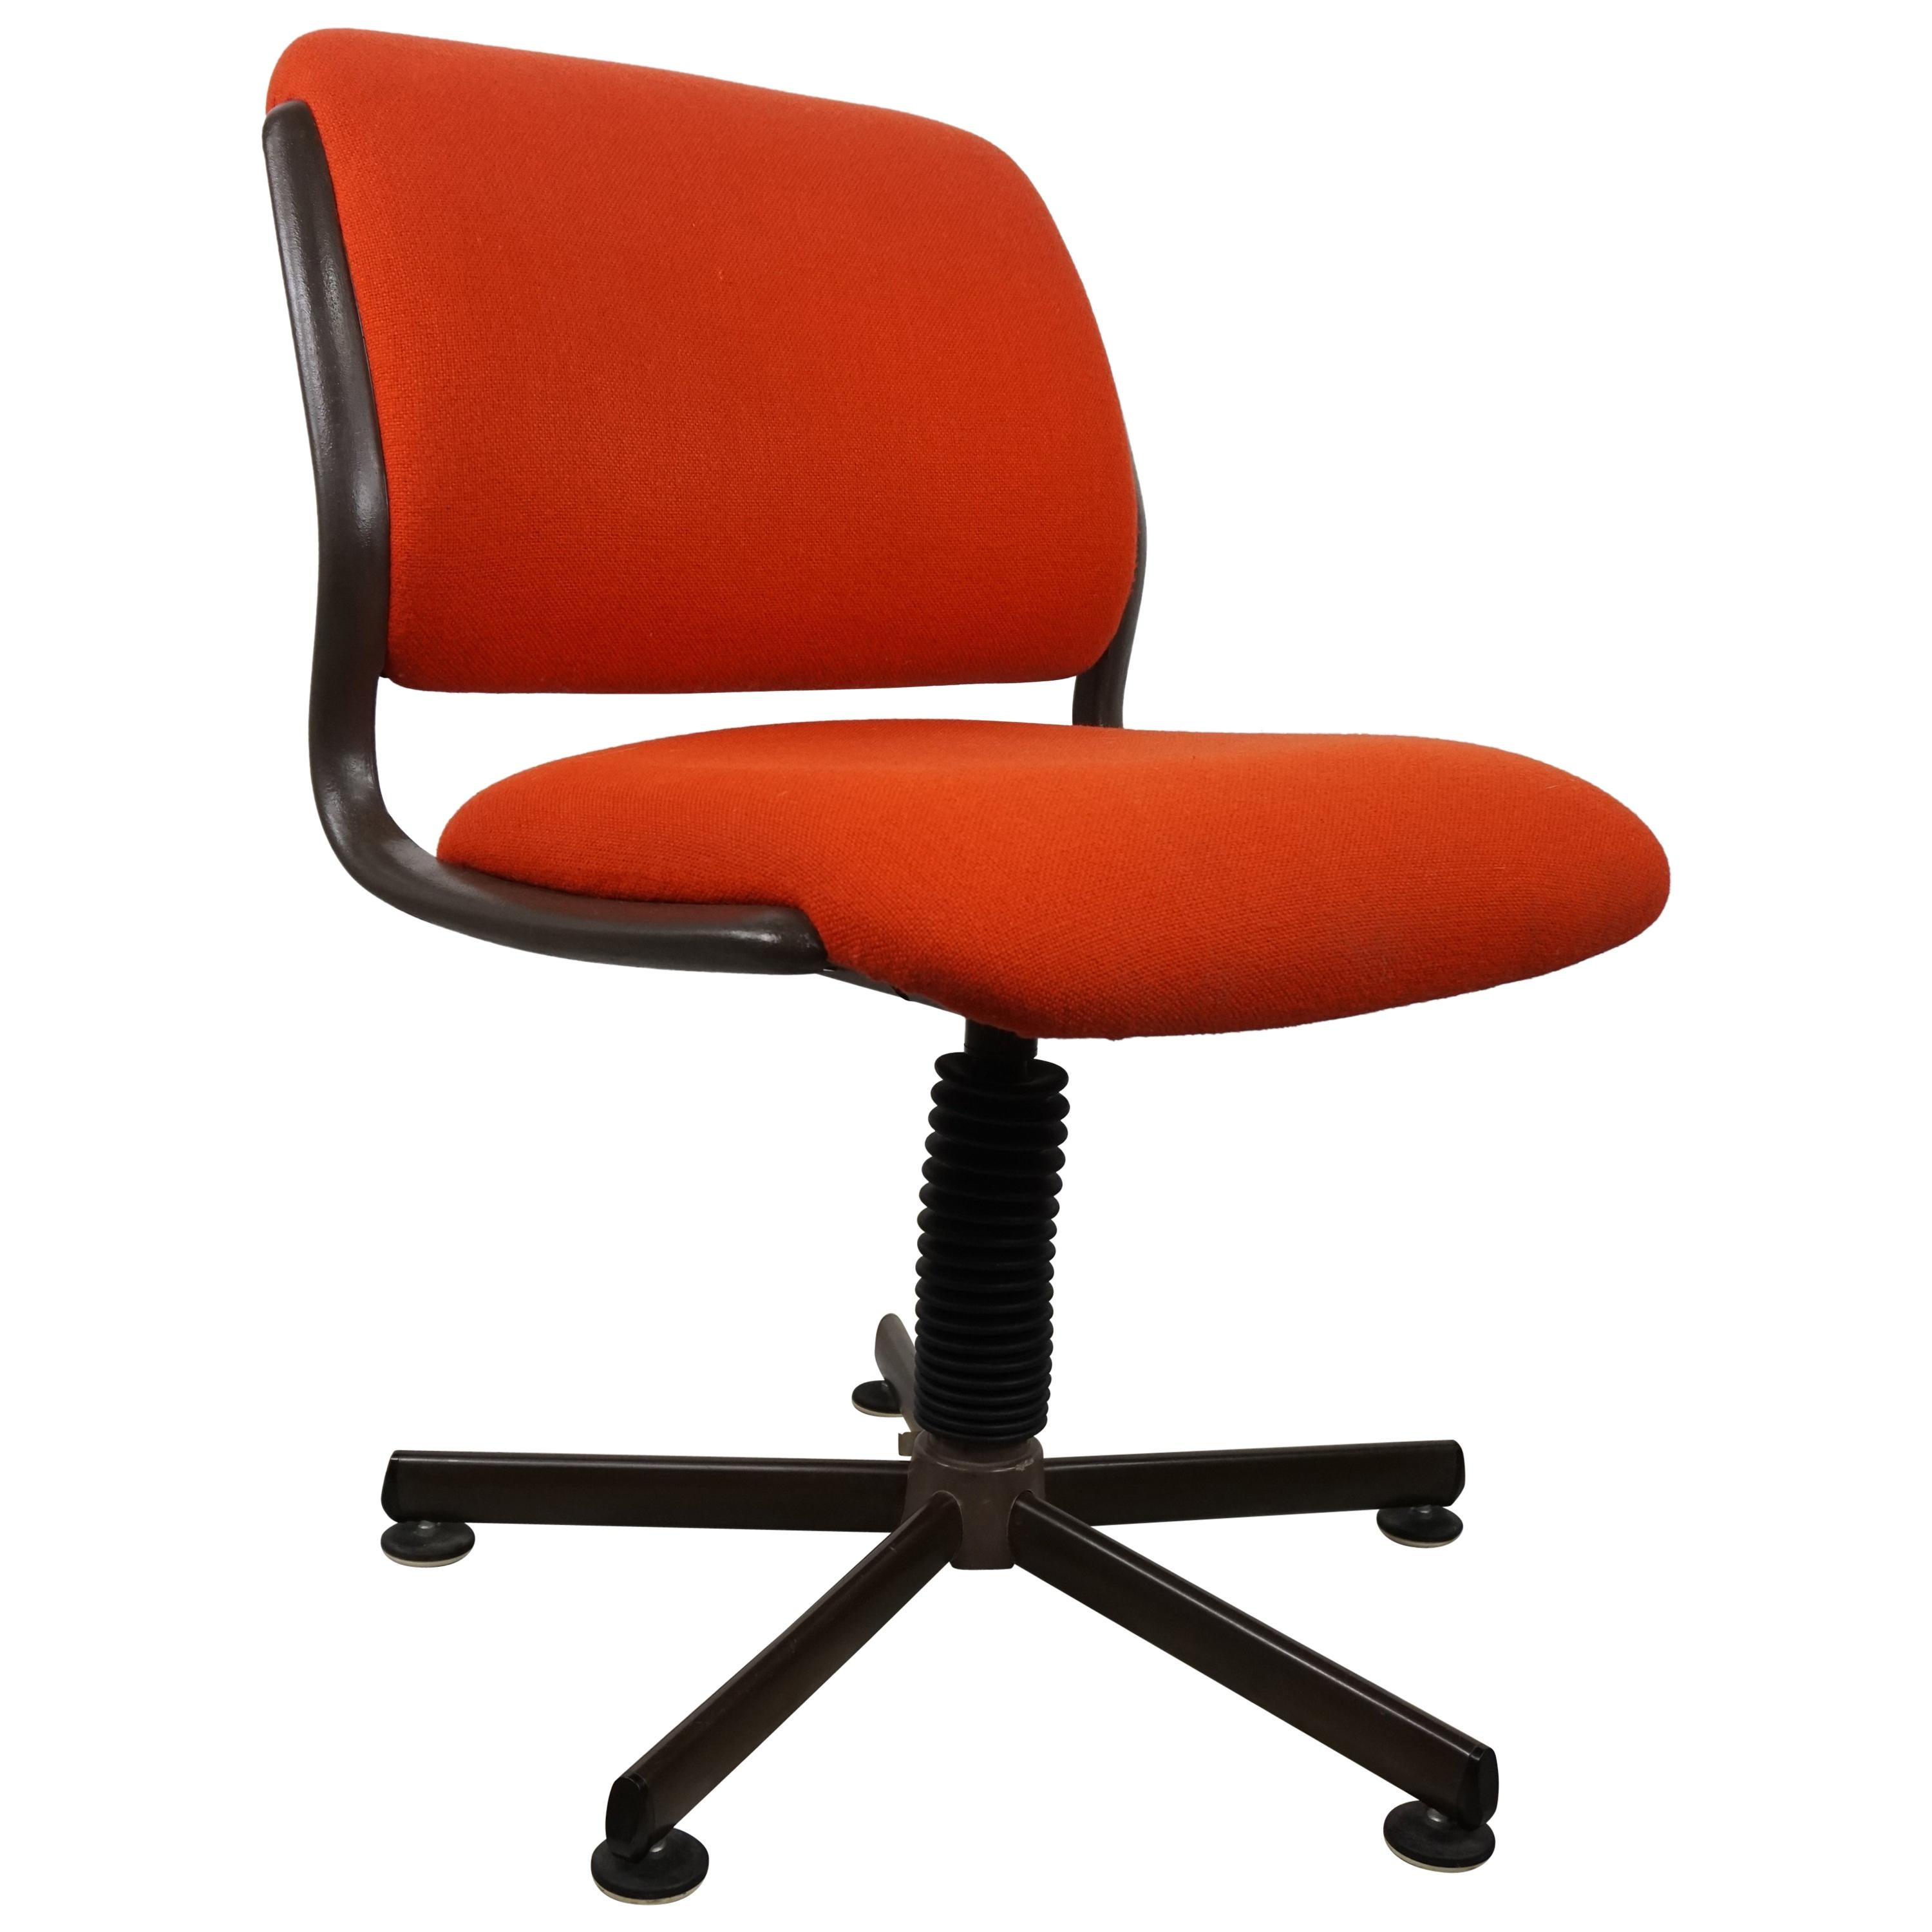 1970s, French Design Roneo Swivel Armchair